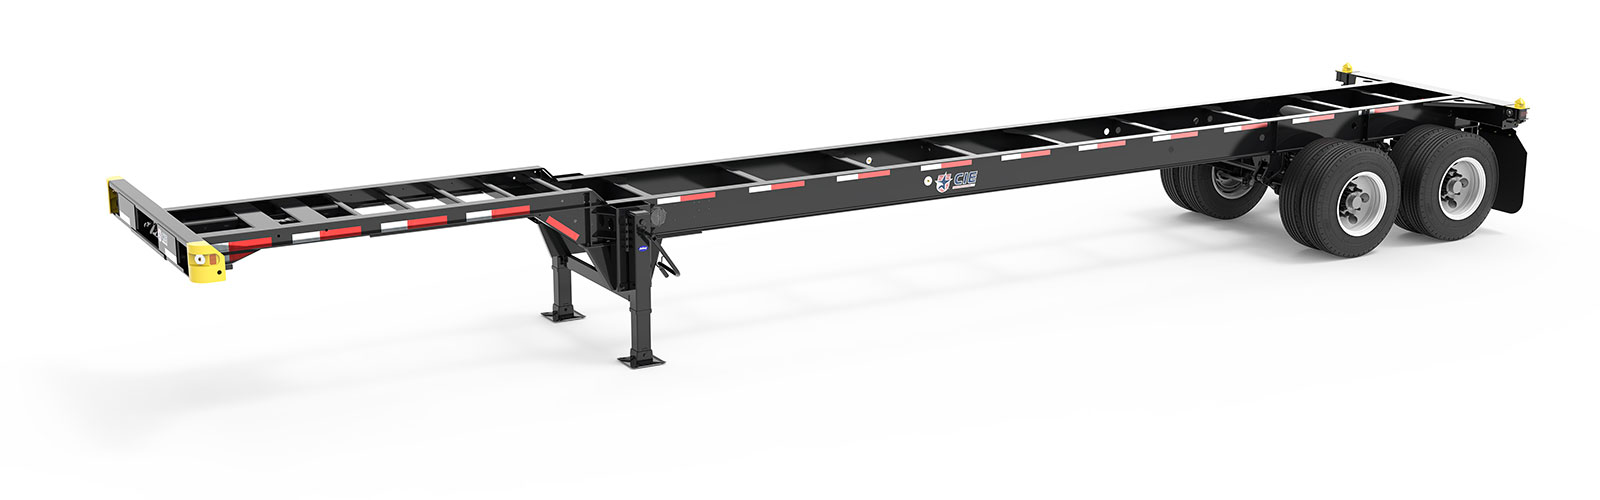 40' Gooseneck Tandem Container Chassis Angle View Final